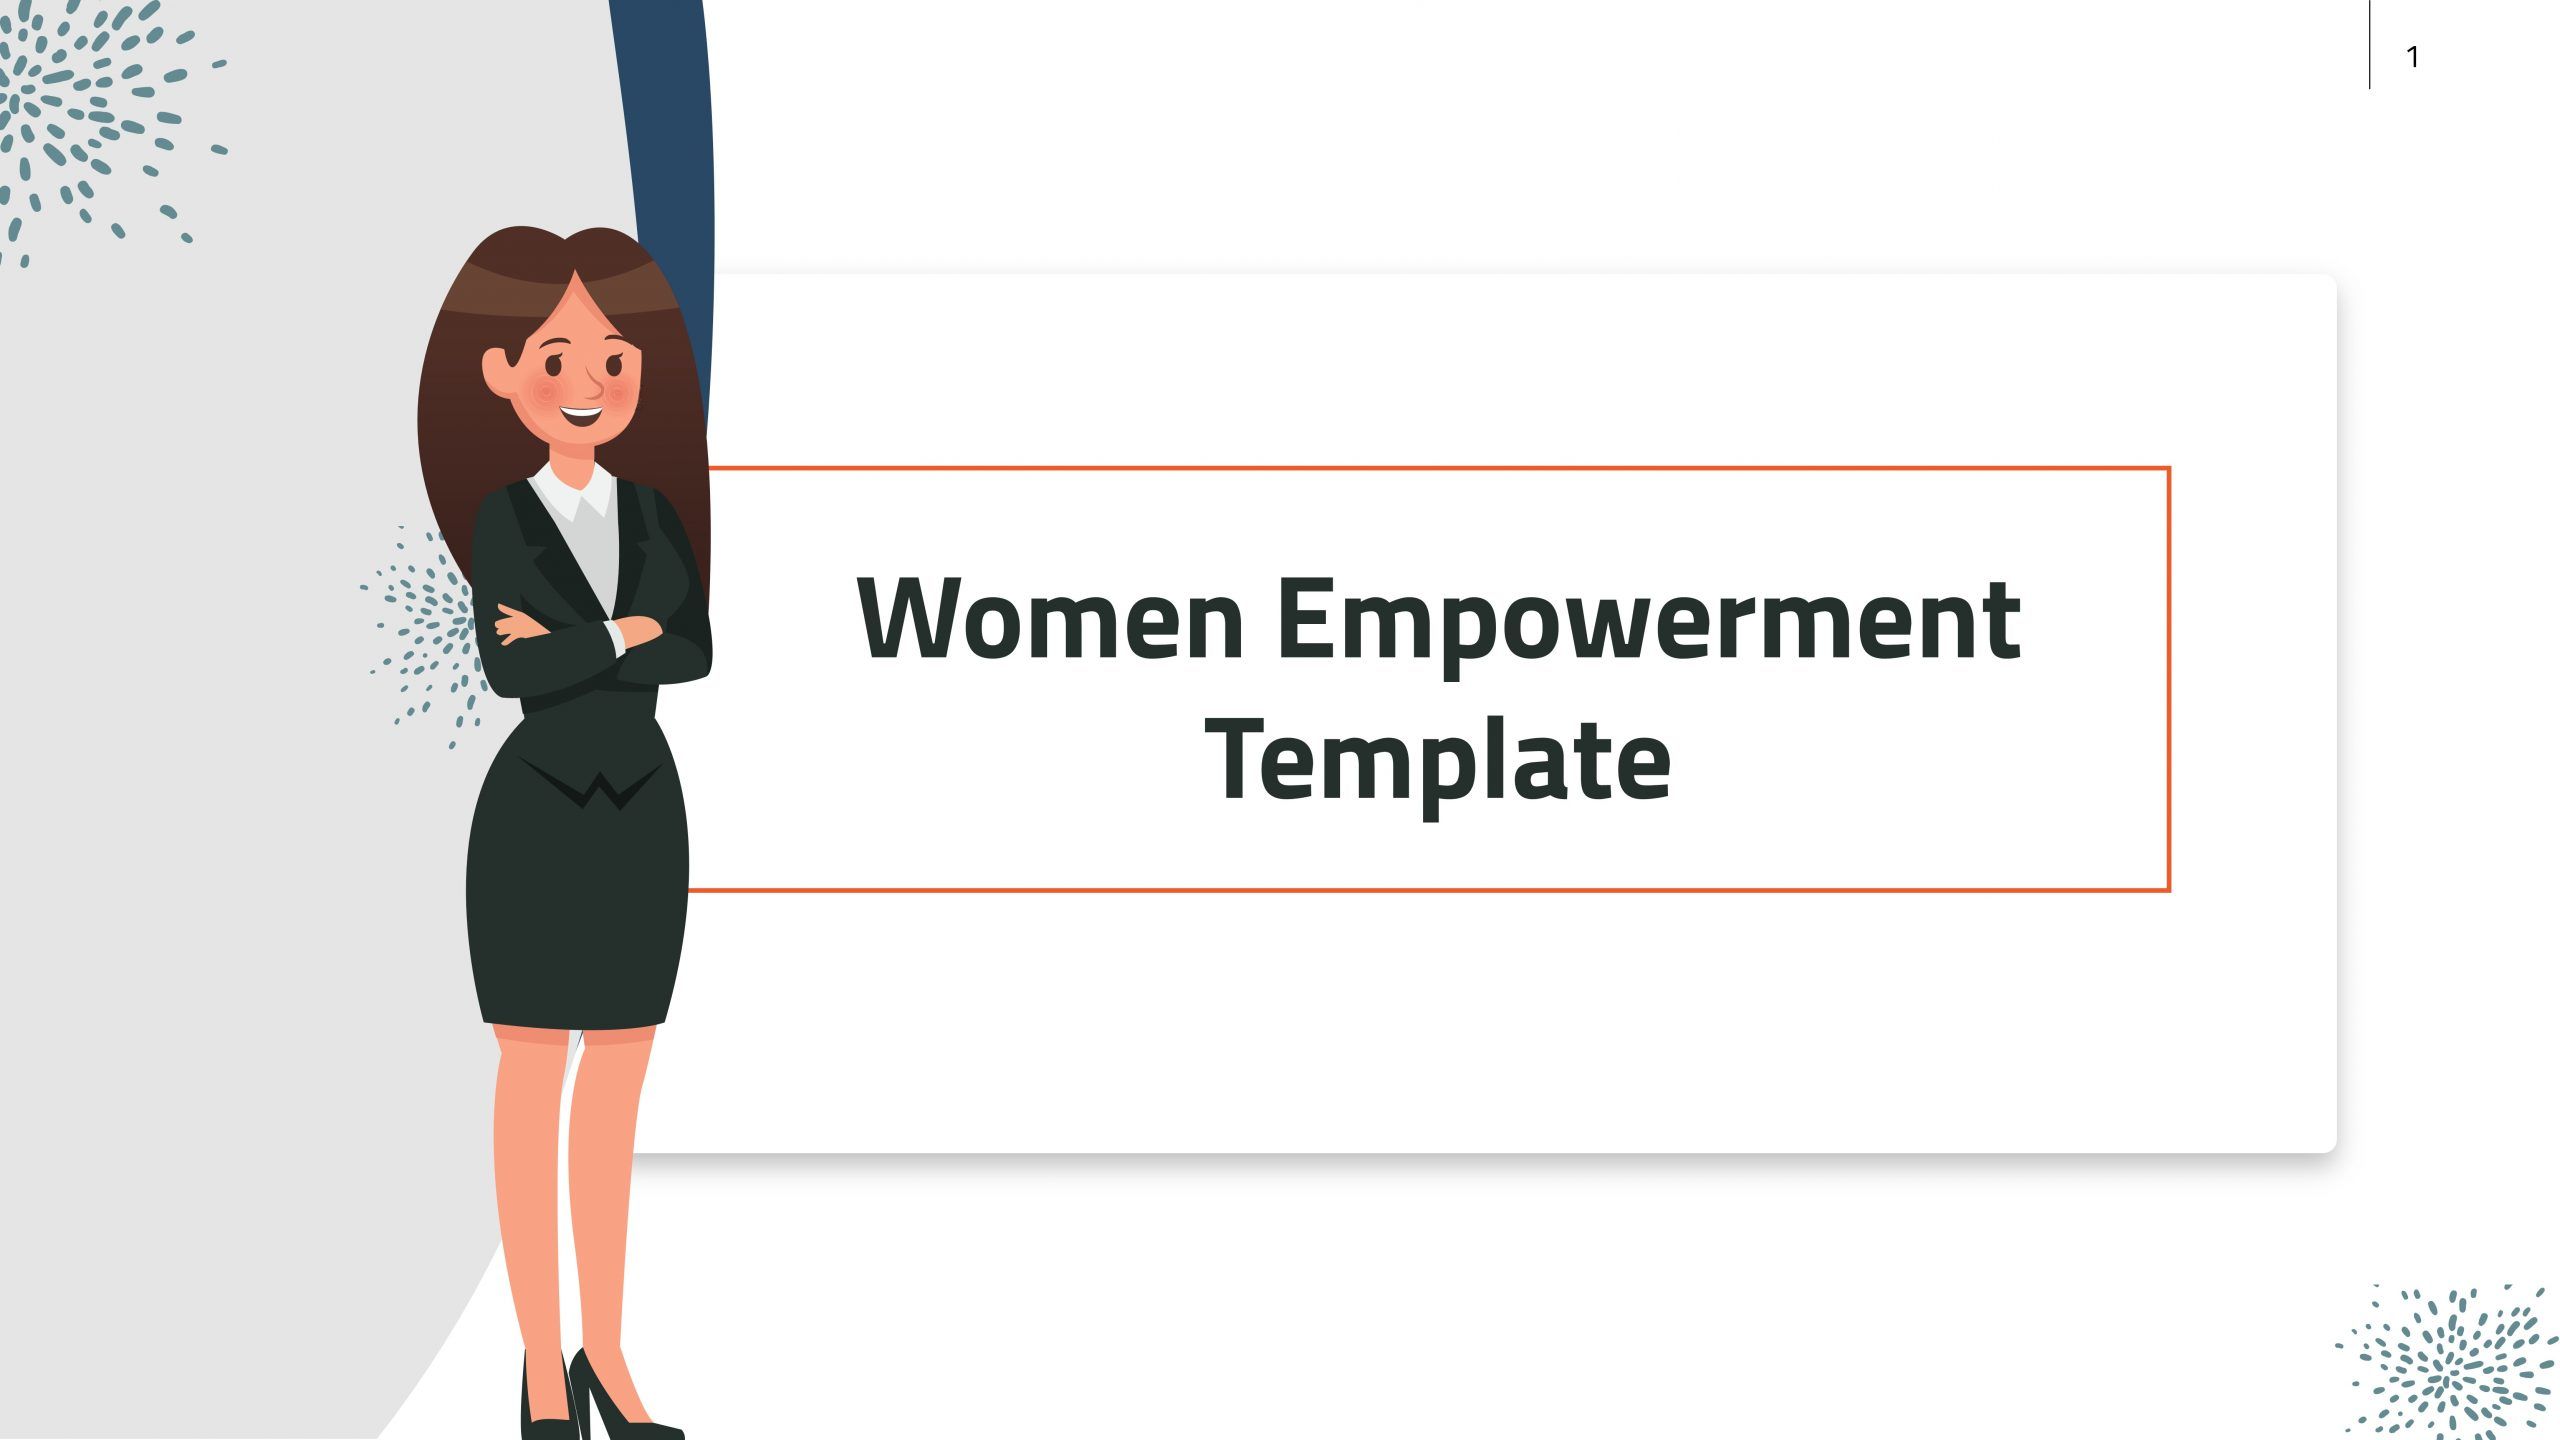 Free presentation template of Women Empowerment